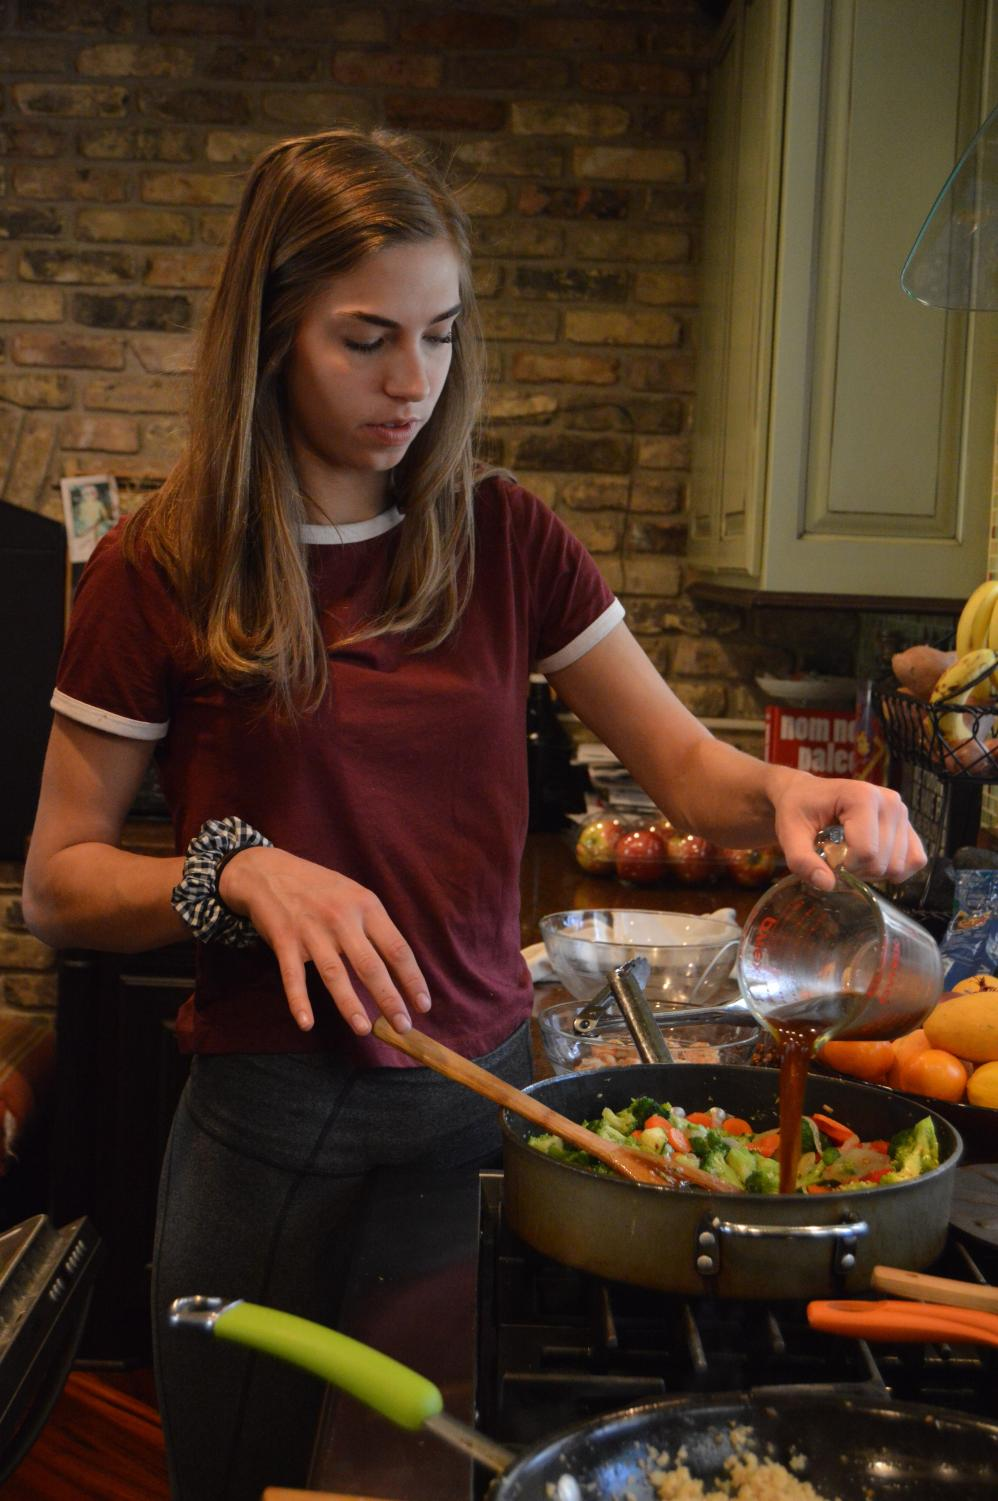 Senior Hannah Wolk prepares a cauliflower shrimp stir fry May 2. Wolk and her family previously participated in the Whole30 challenge, during which participants eliminate sugar, alcohol, grains, legumes, soy, and dairy from their diets for 30 days. Although they no longer keep a strict paleo diet, Wolk and her family still eat many paleo foods.